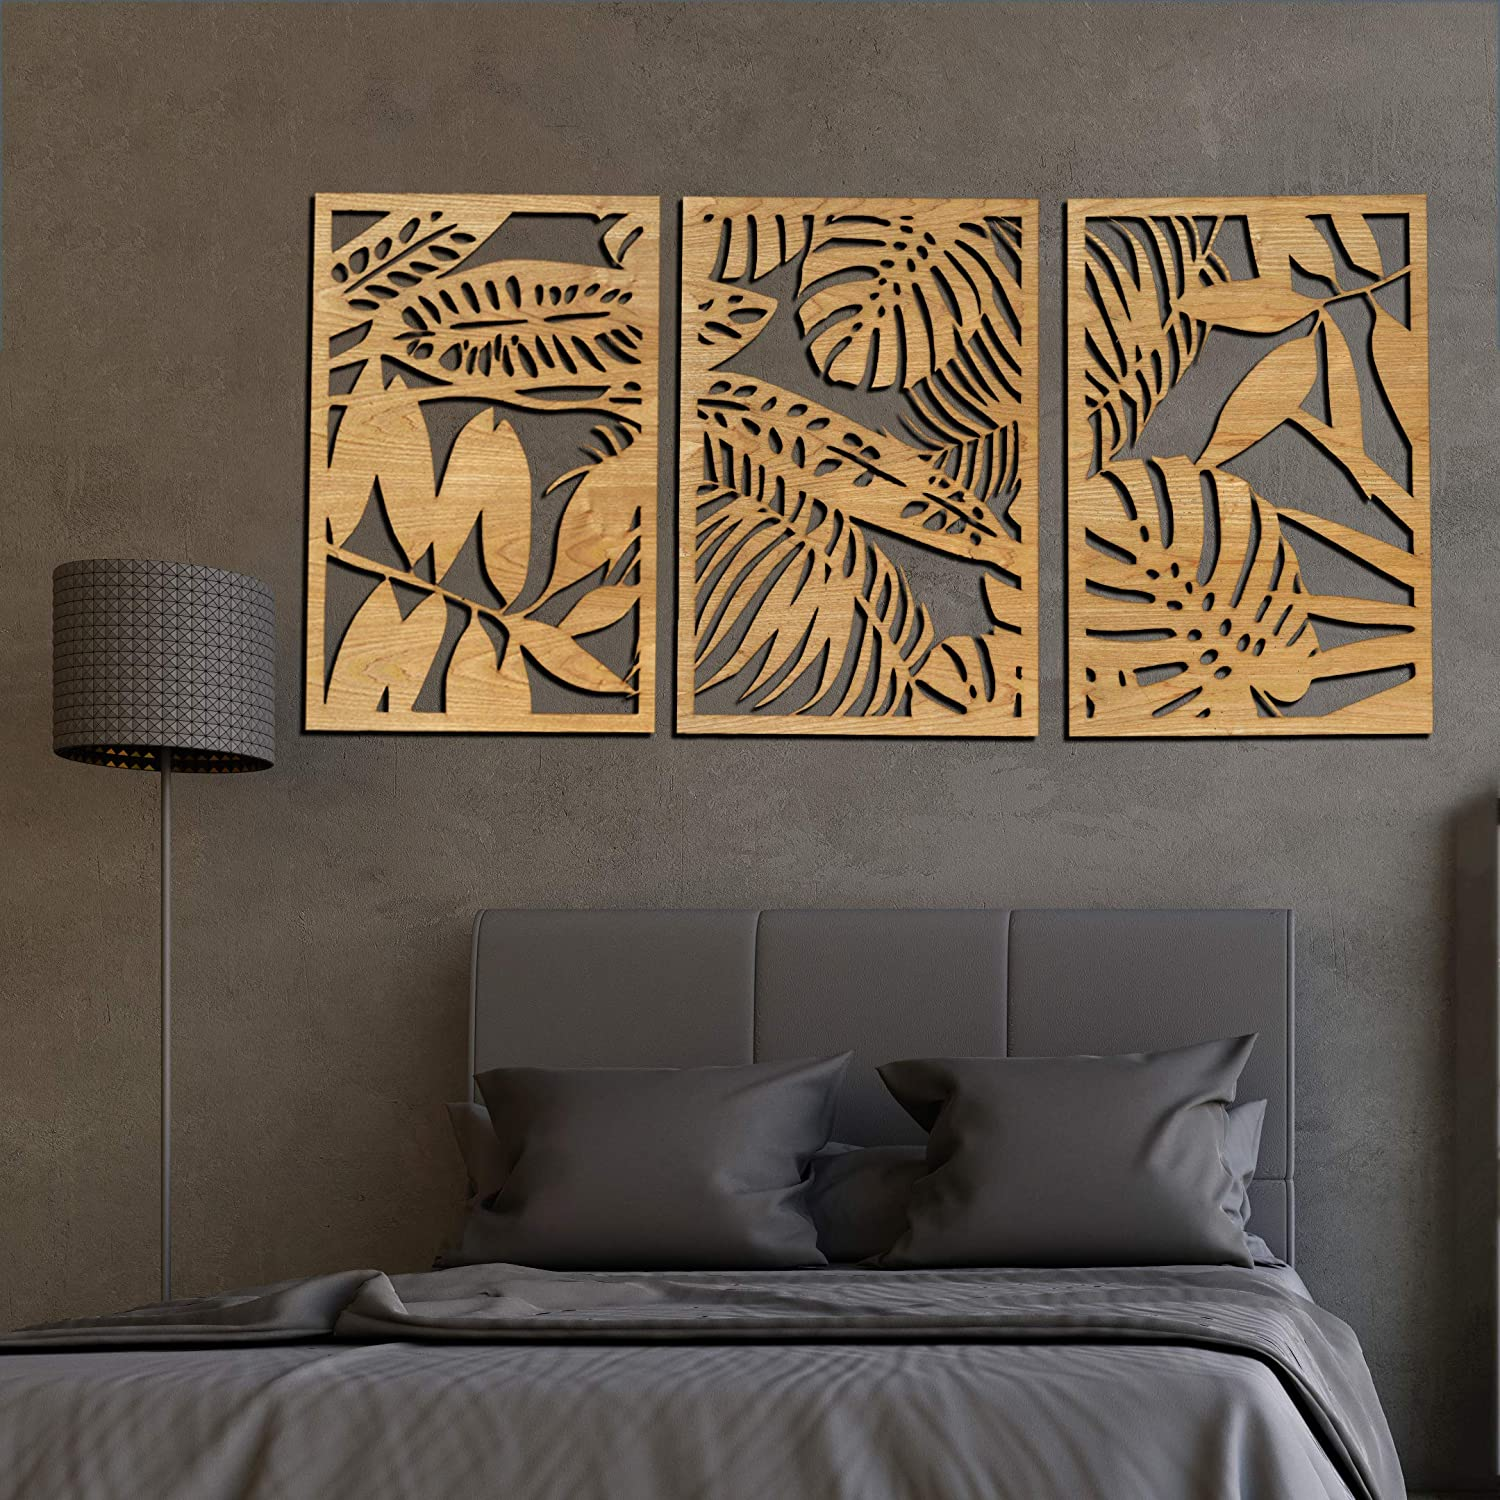 Mostertera Leaves Wall Art decor 3 Panel Wooden (Natural, XL : 63 x 31.5 inches)